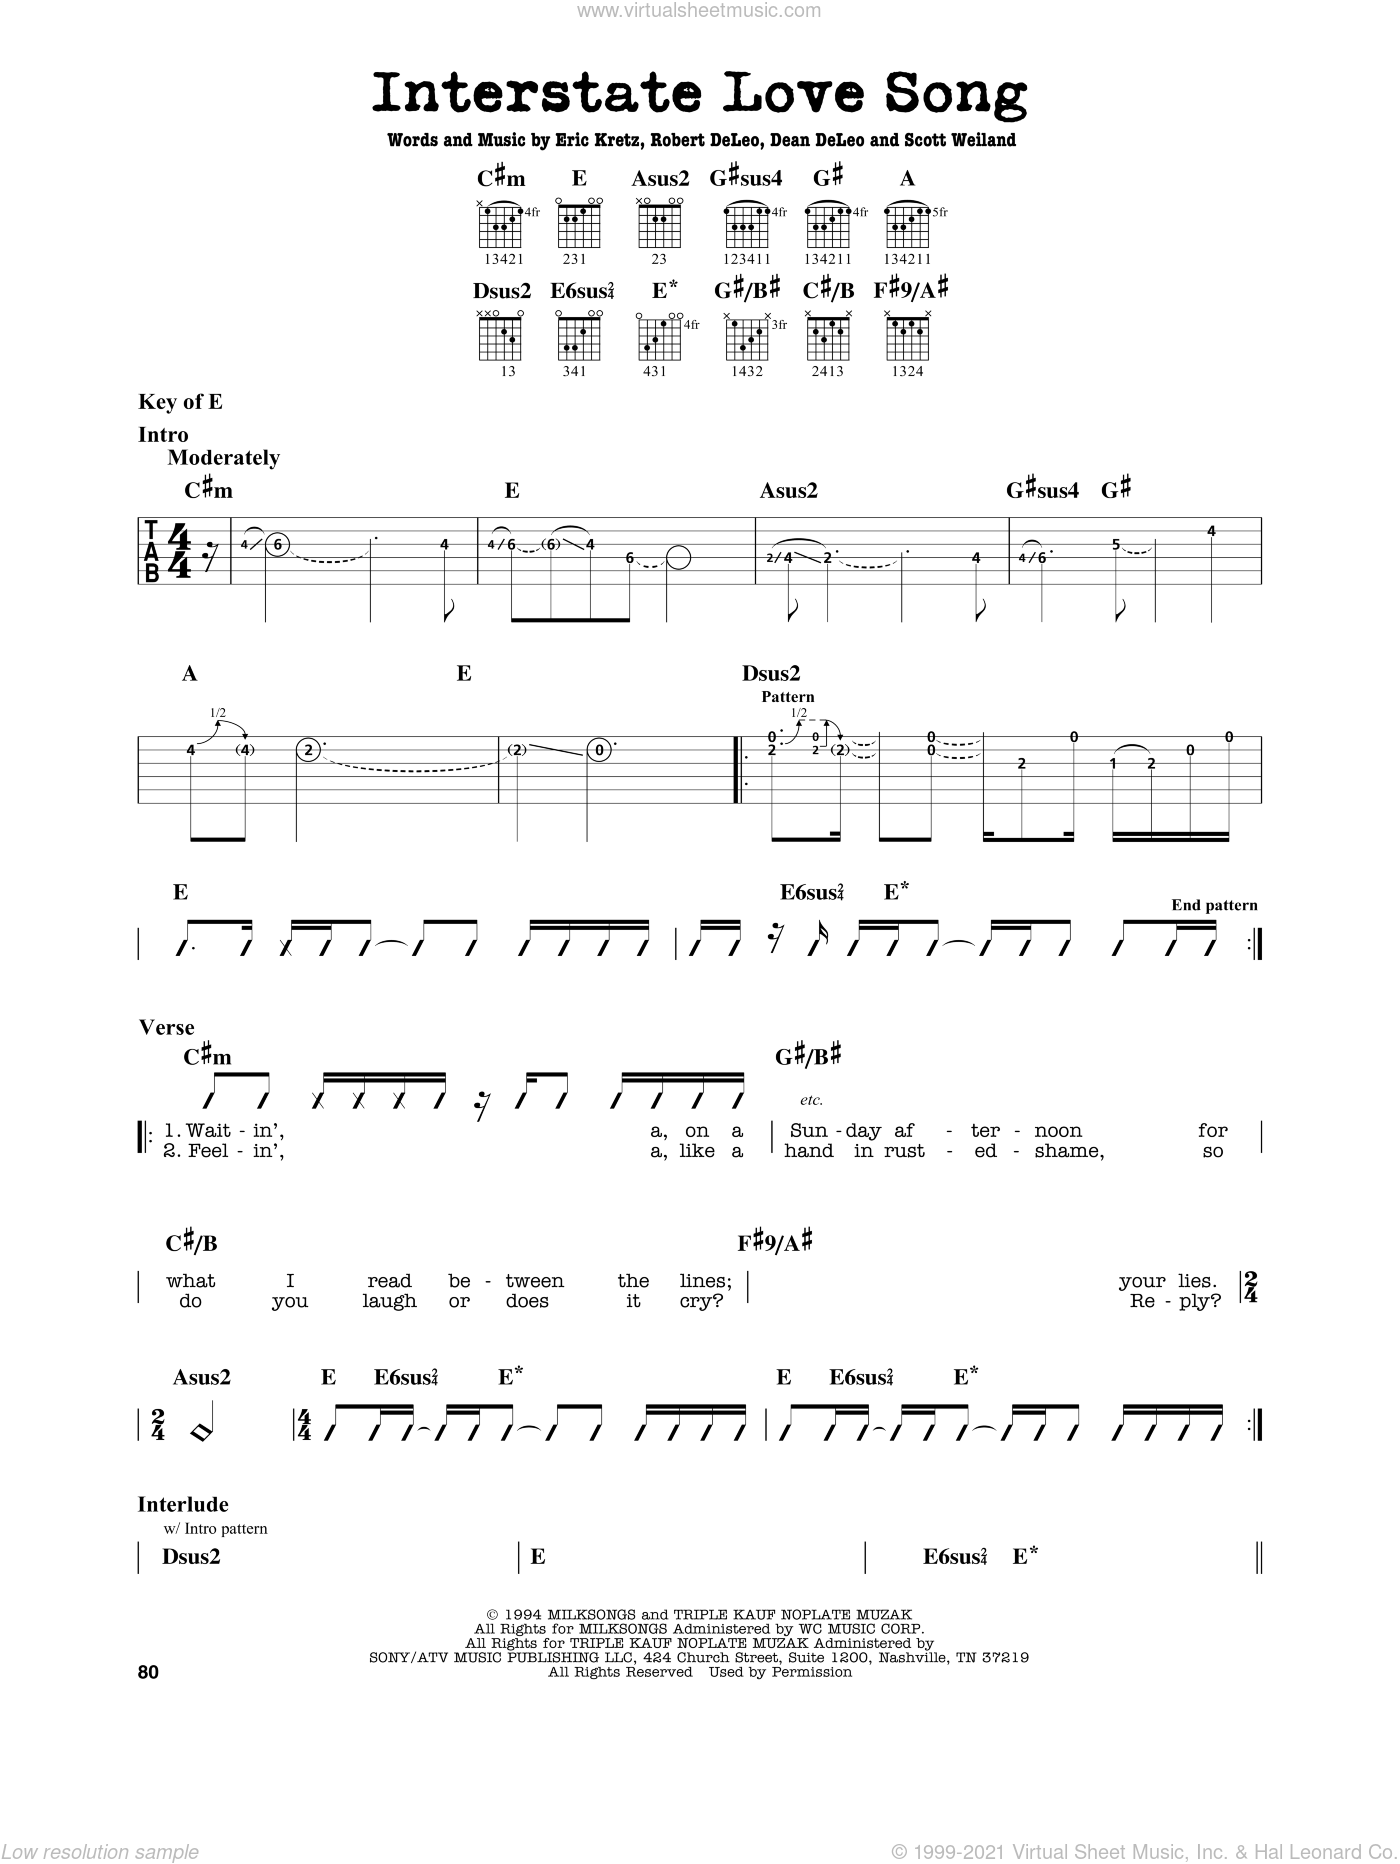 Interstate Love Song sheet music for guitar solo (lead sheet) by Scott Weiland. Score Image Preview.